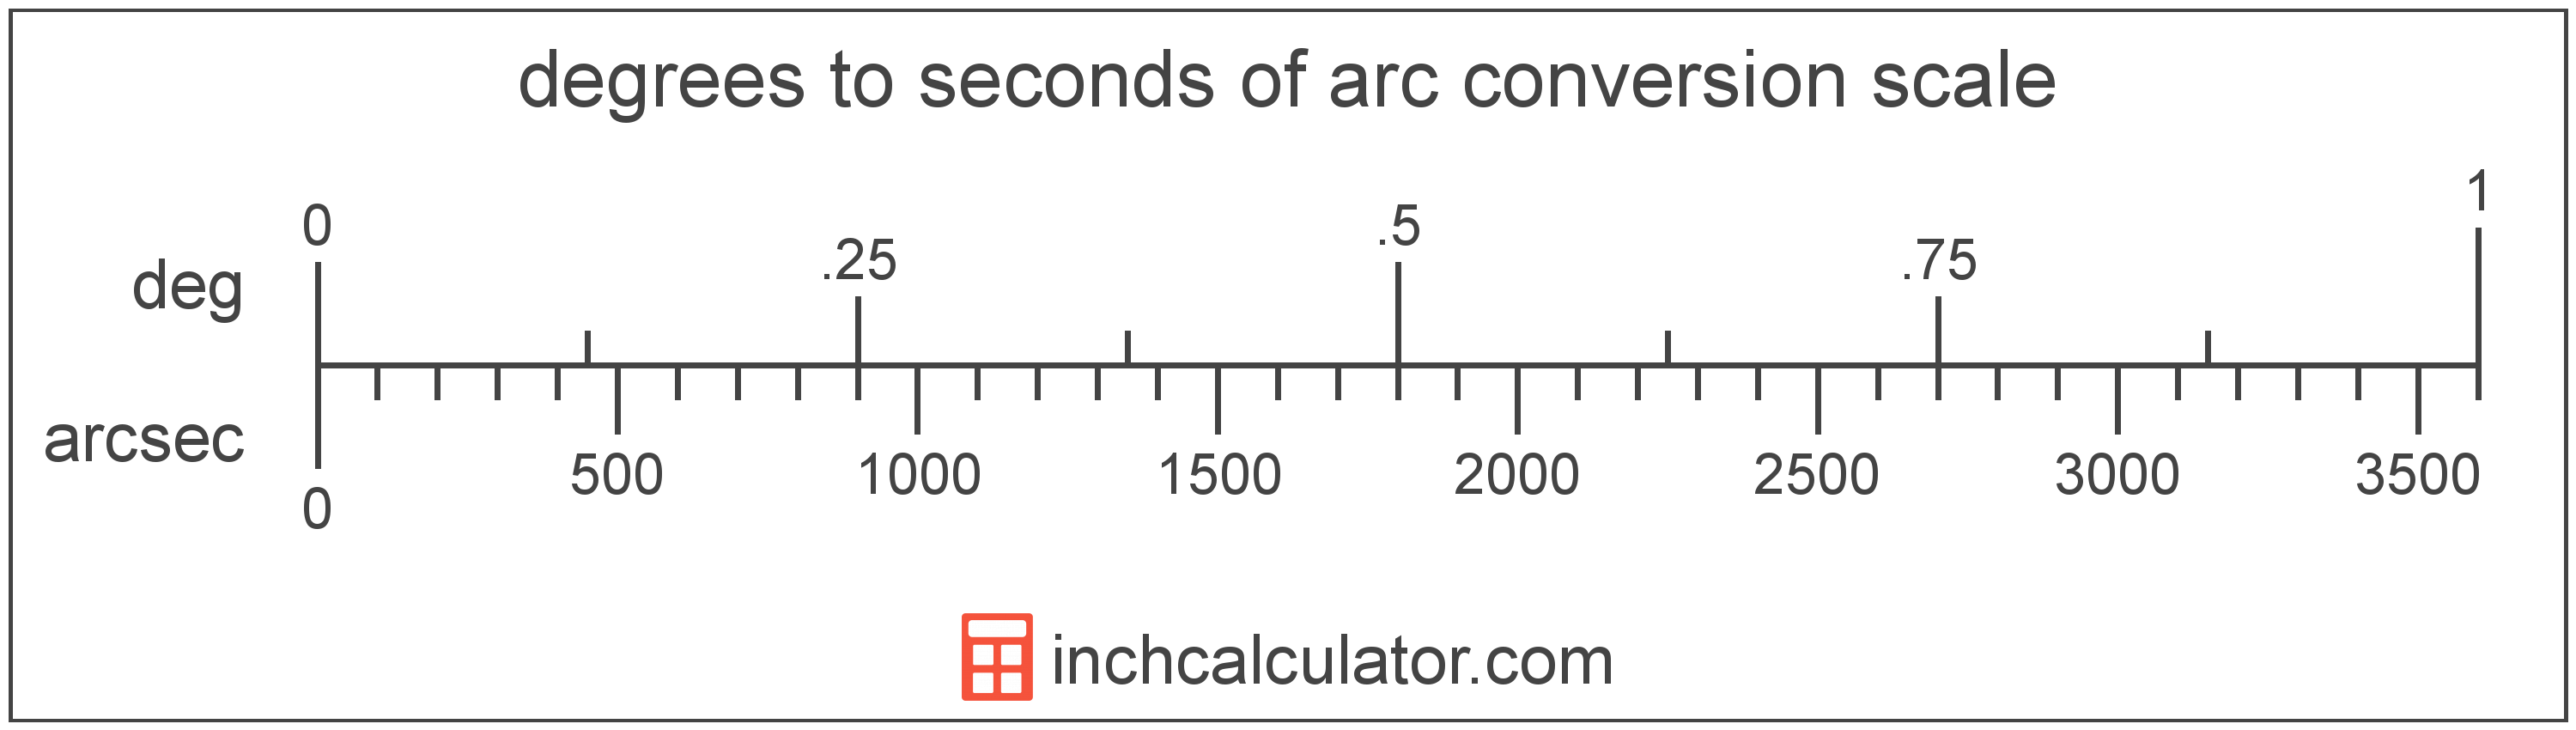 conversion scale showing degrees and equivalent seconds of arc angle values